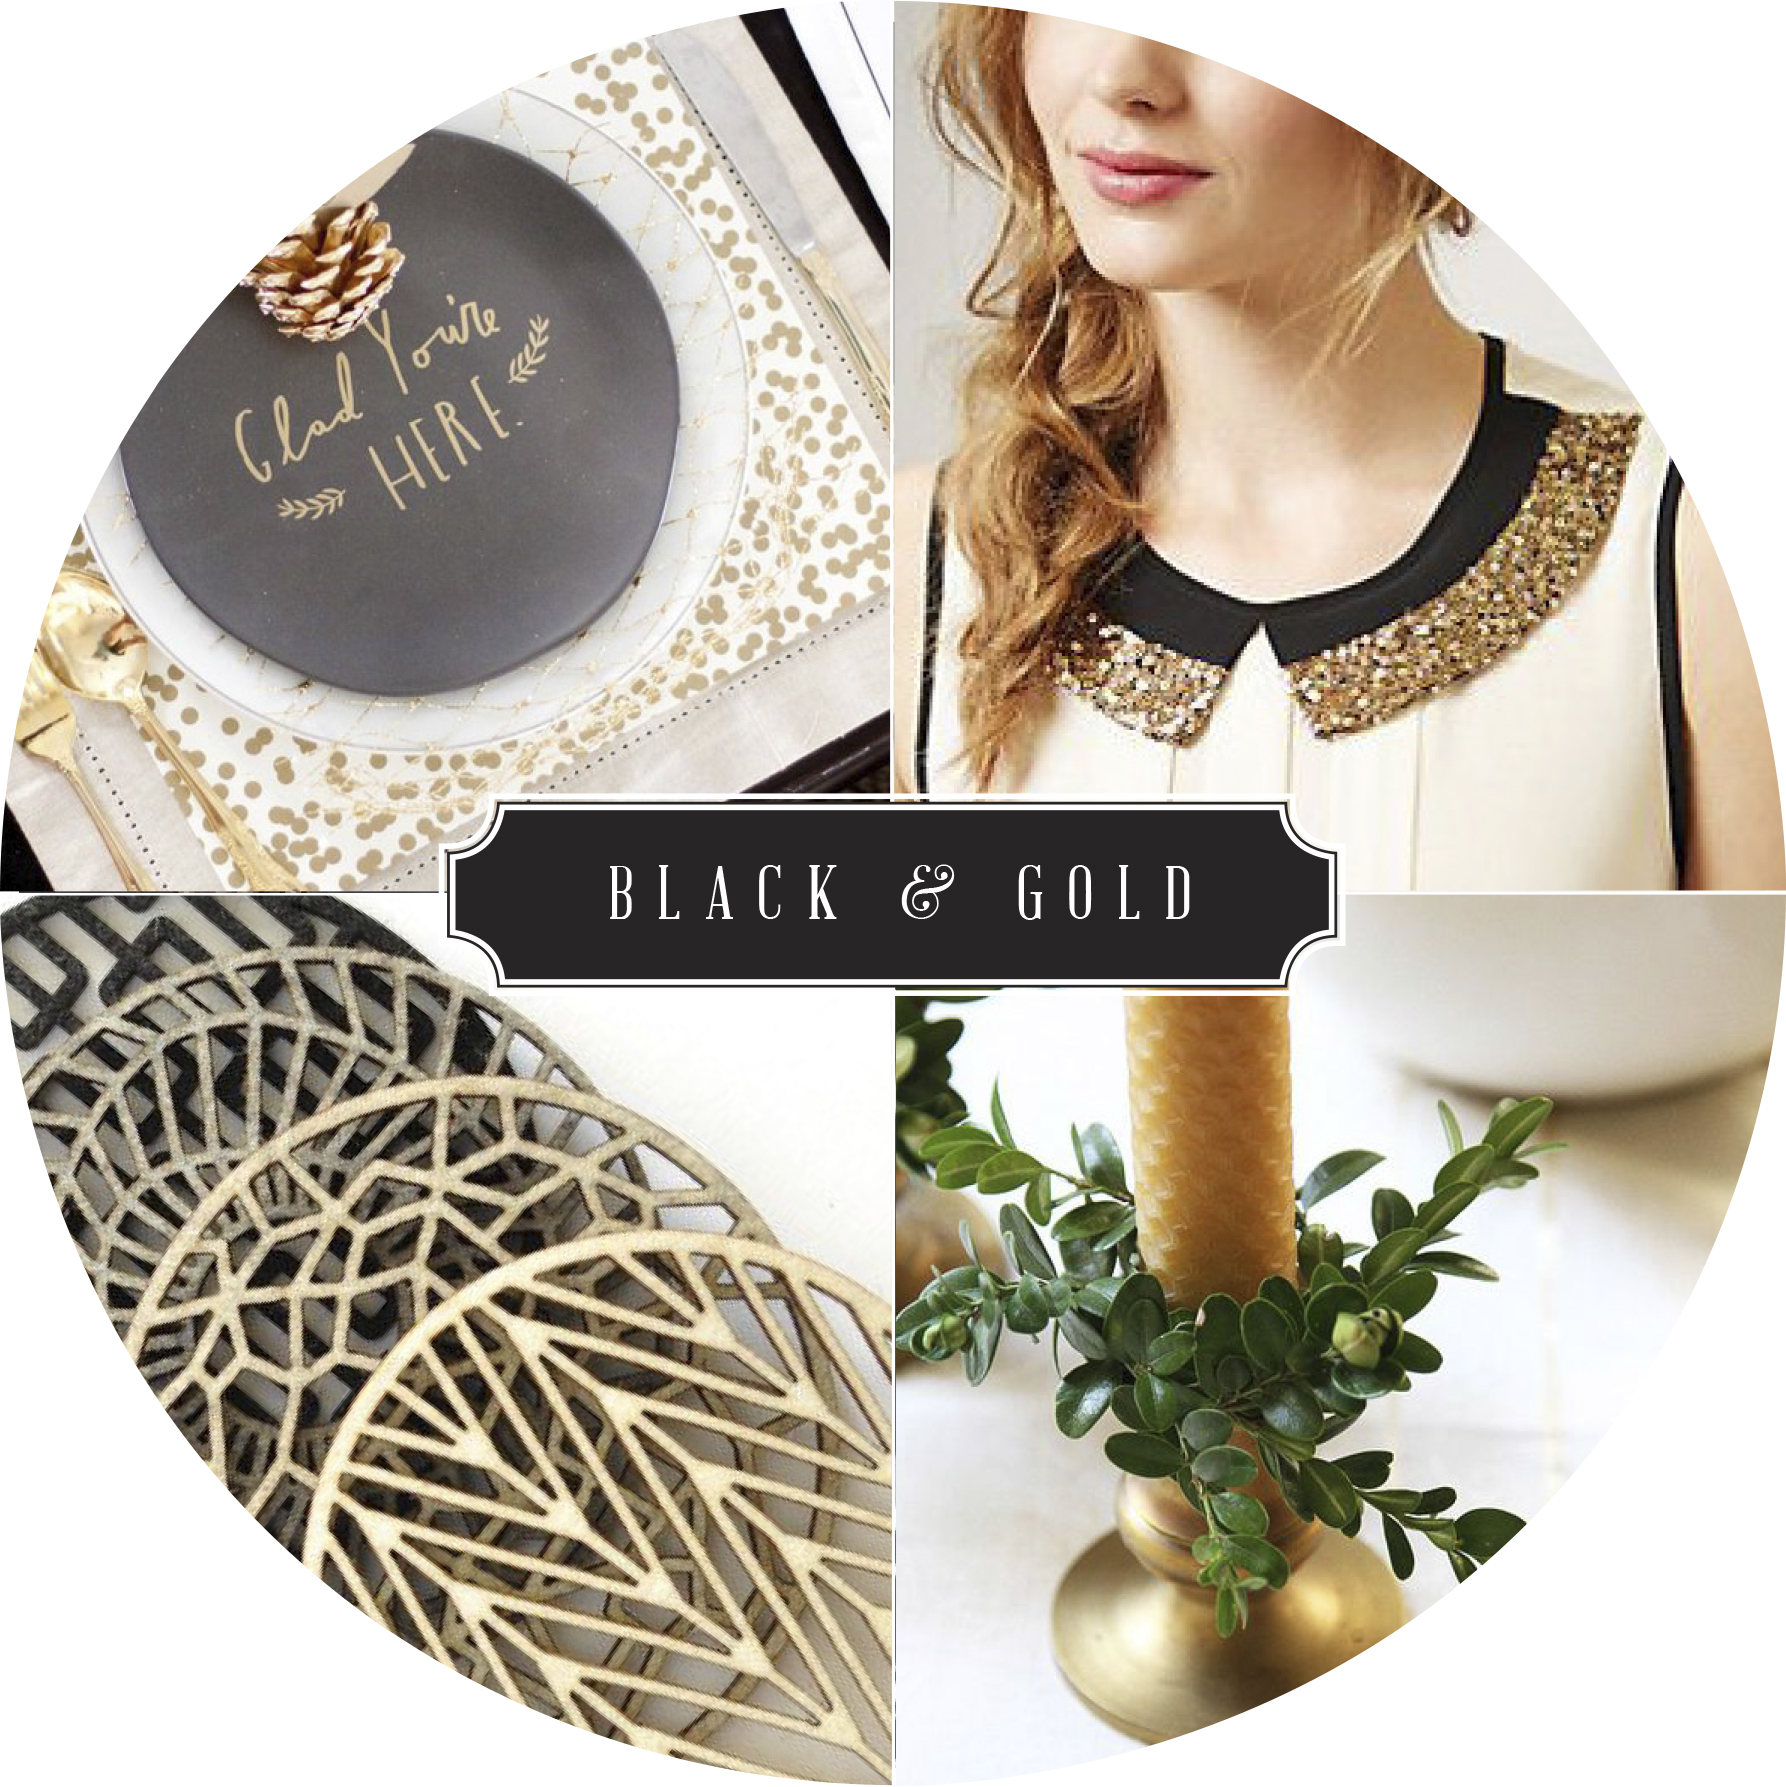 colorcompanion_BlackandGold_1.jpg